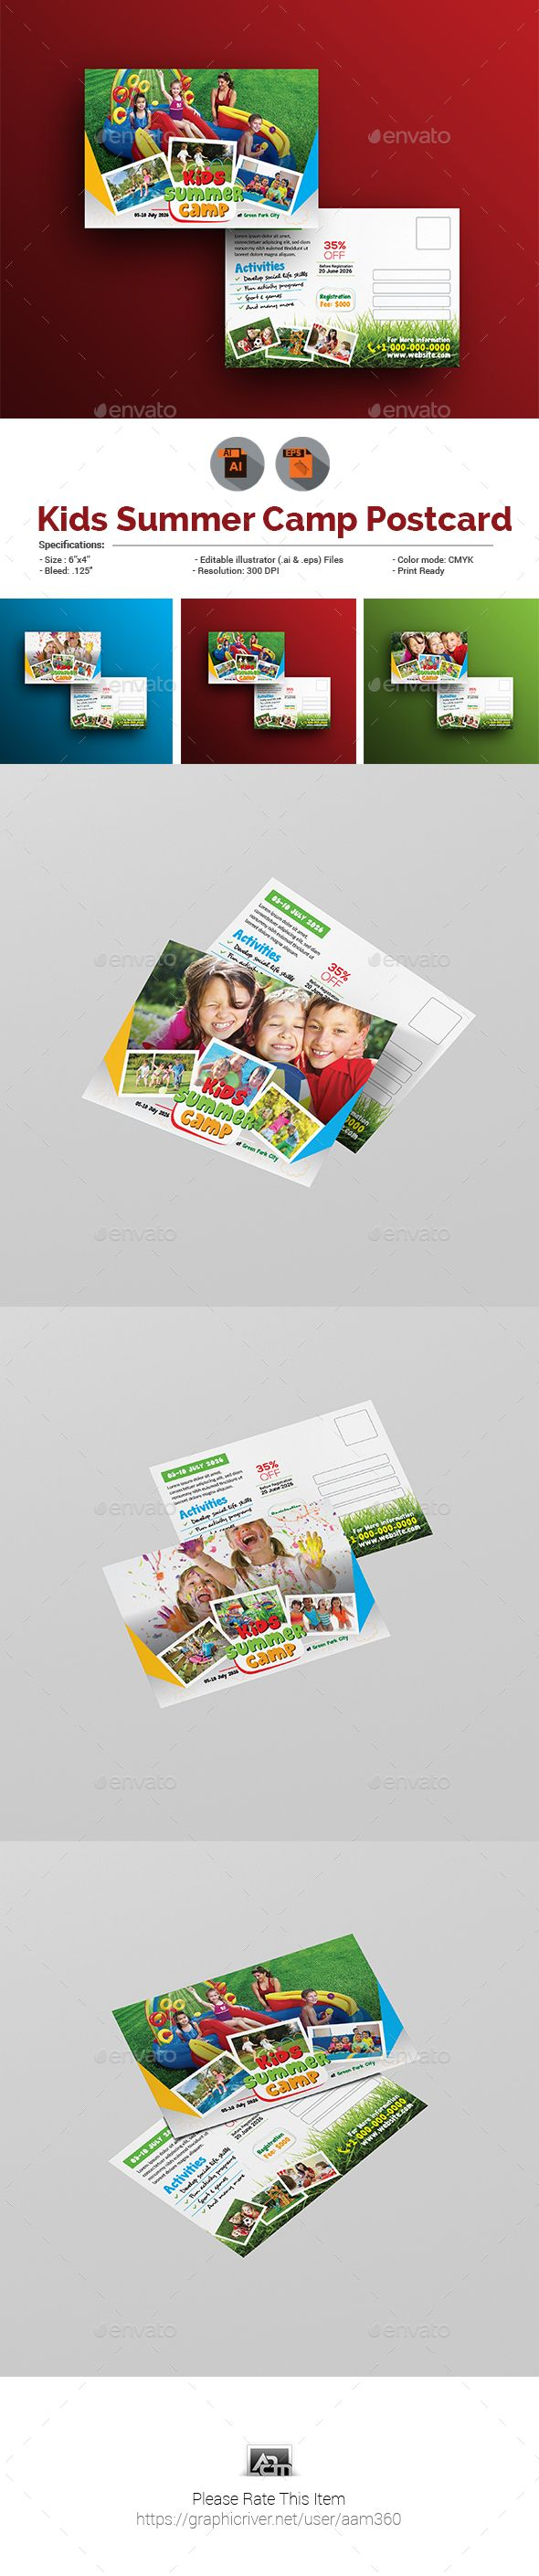 29 best Kids Summer Camp Print Templates images on Pinterest | Print ...